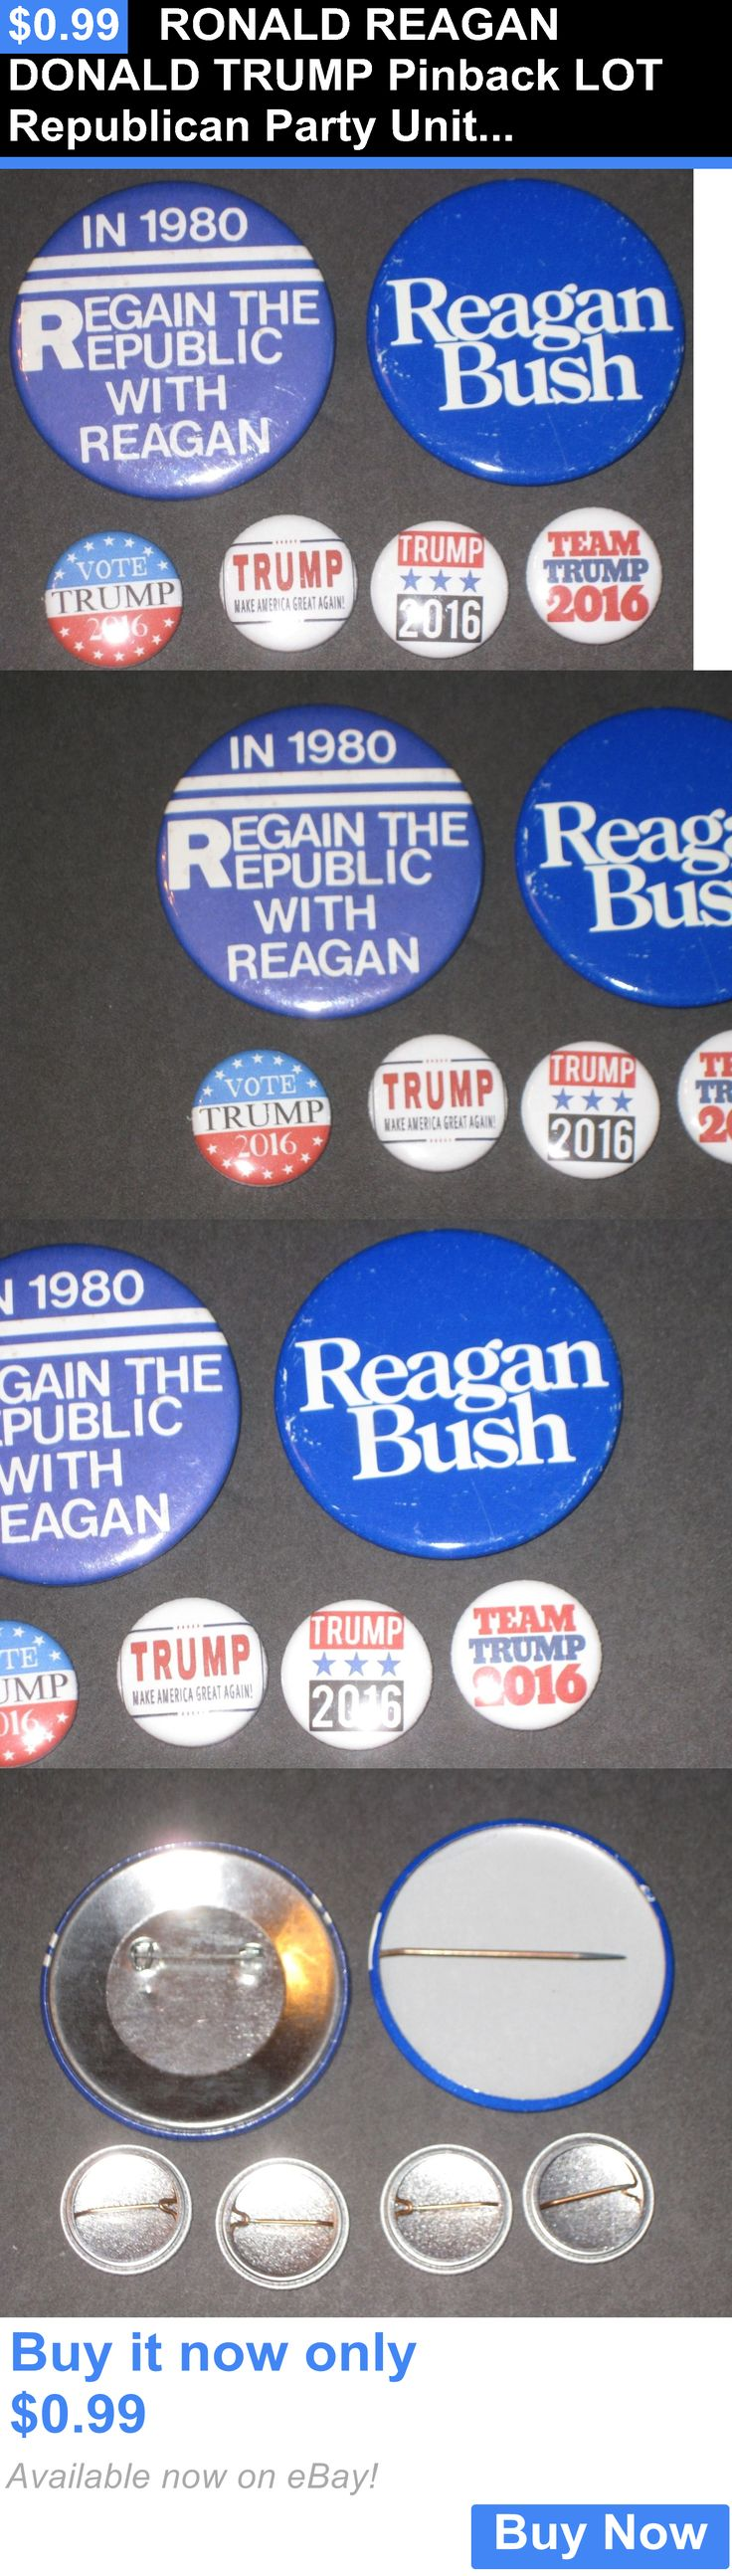 donald trump: Ronald Reagan Donald Trump Pinback Lot Republican Party United States Election BUY IT NOW ONLY: $0.99